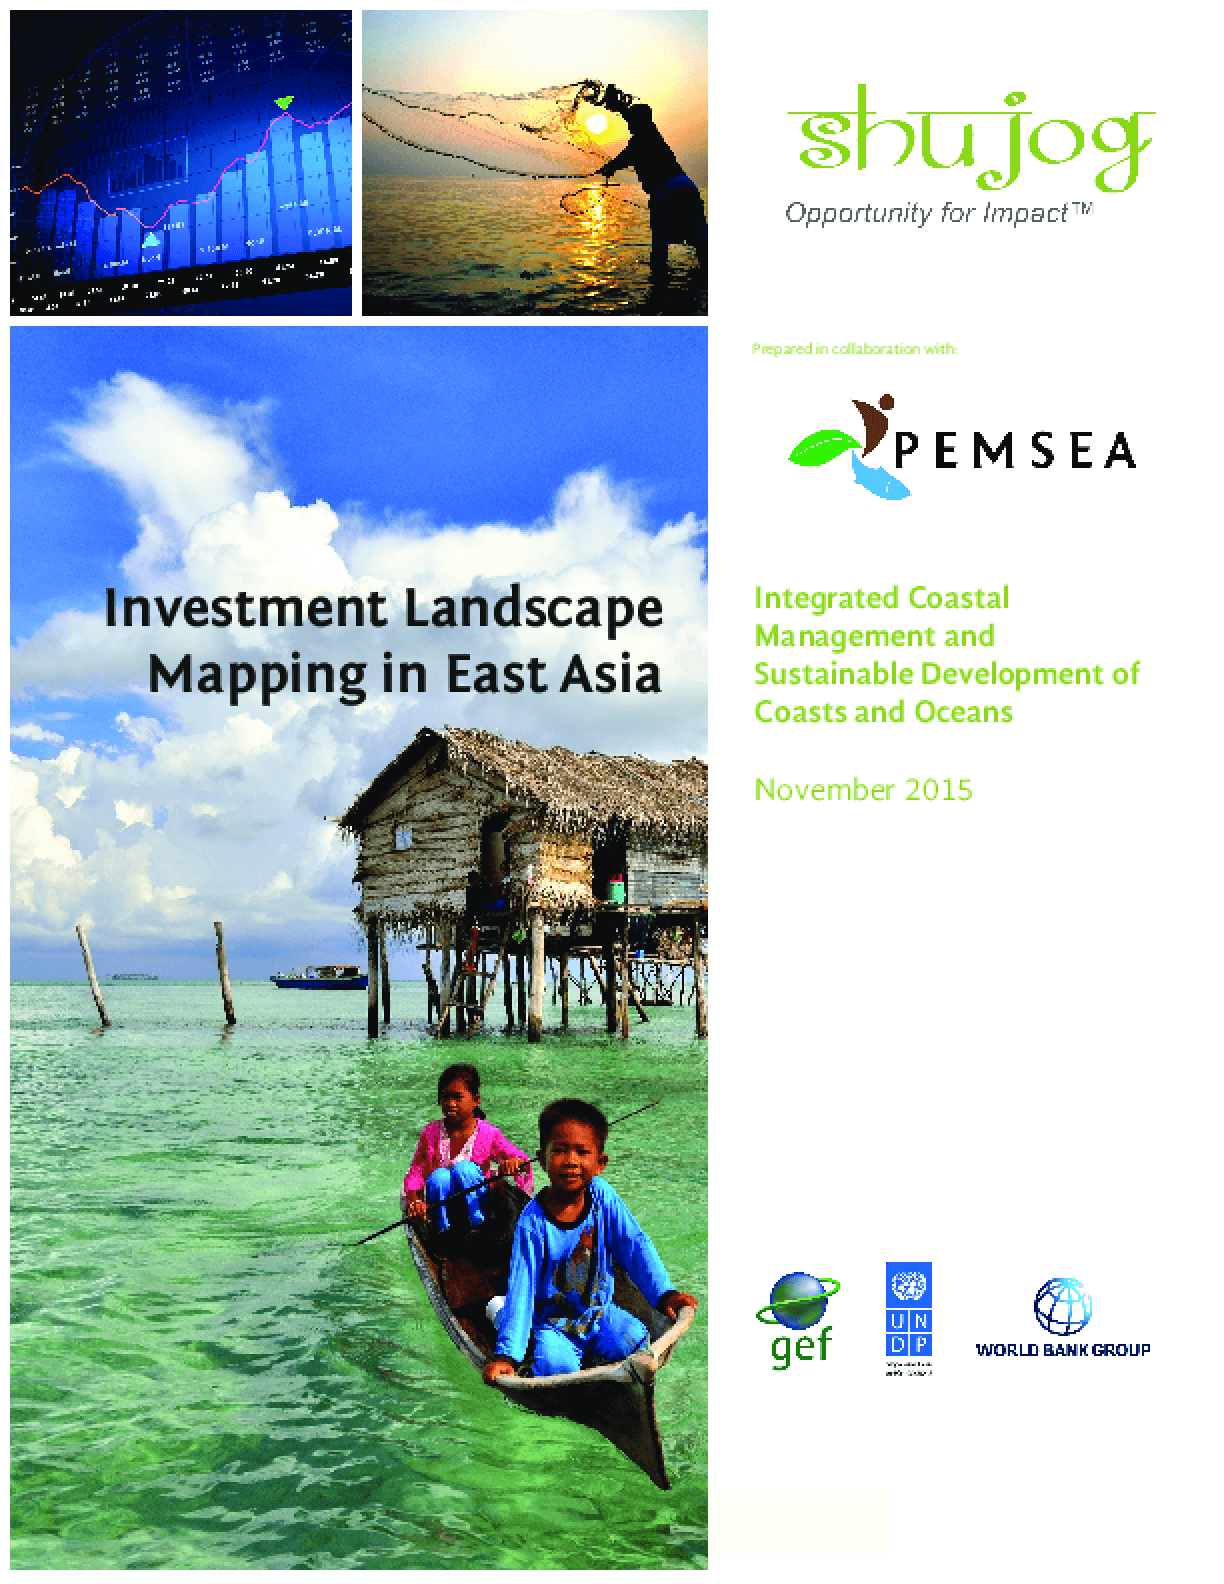 Investment Landscape Mapping in East Asia: Integrated Coastal Management and Sustainable Development of Coasts and Oceans